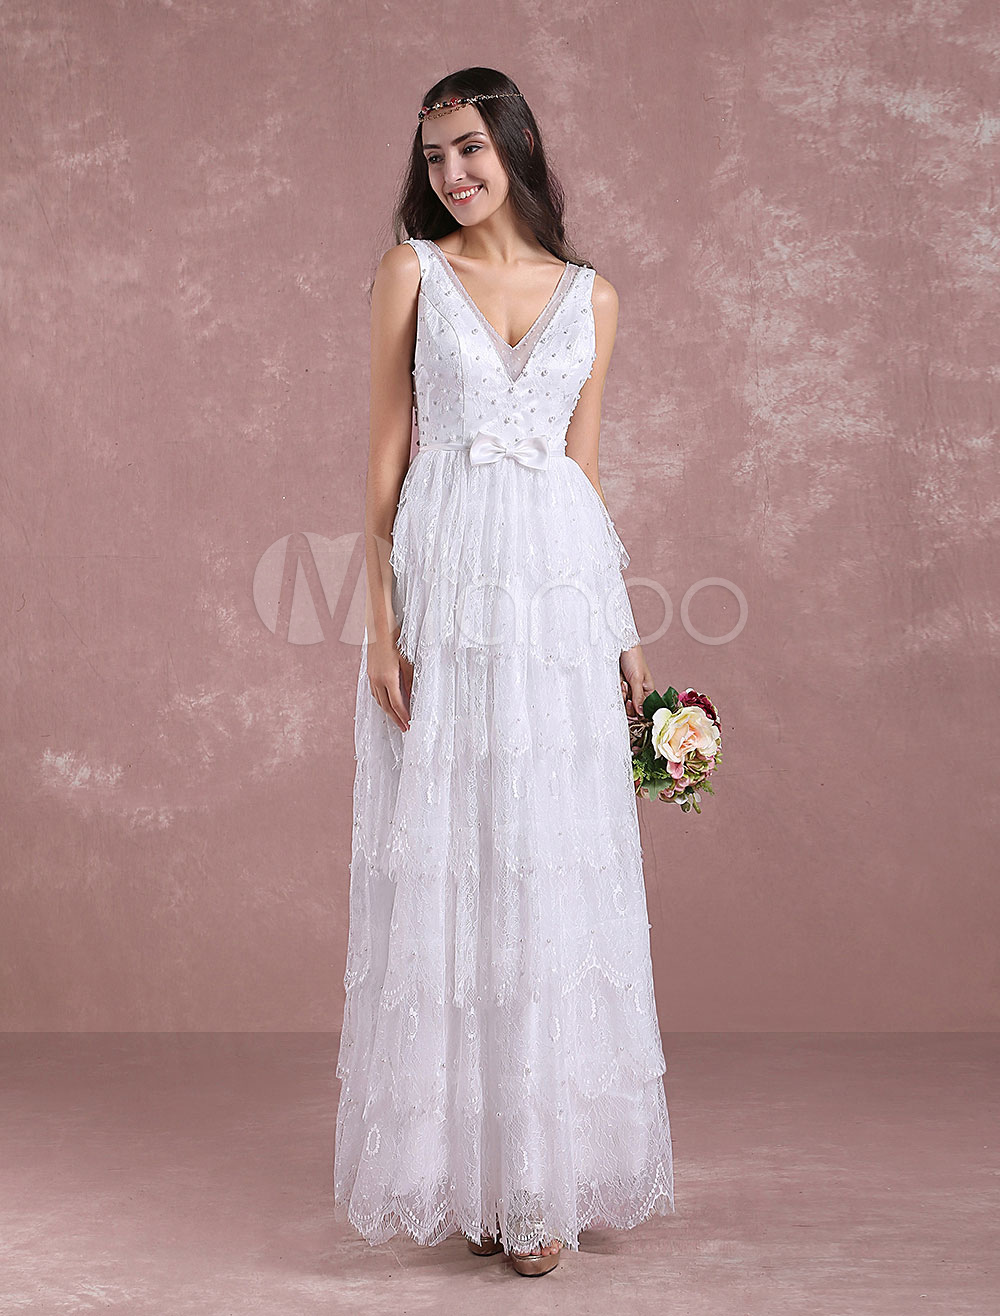 Buy Summer Wedding Dresses 2018 Boho Lace Beading Beach Bridal Dress V Neck Sleeveless Backless Tiered Floor Length Bridal Gown With Bow Sash Milanoo for $201.59 in Milanoo store